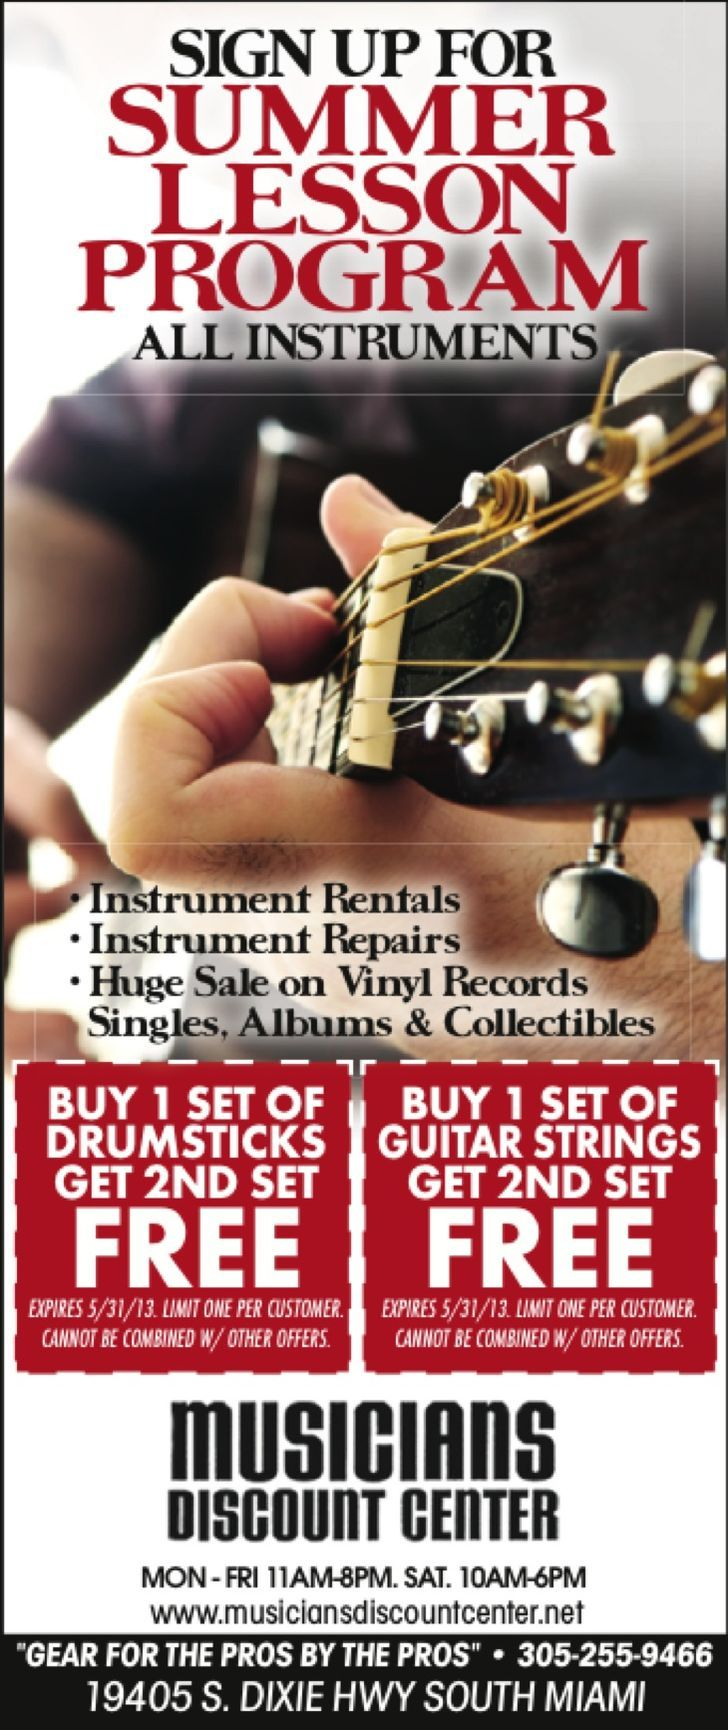 Musicians Discount Center